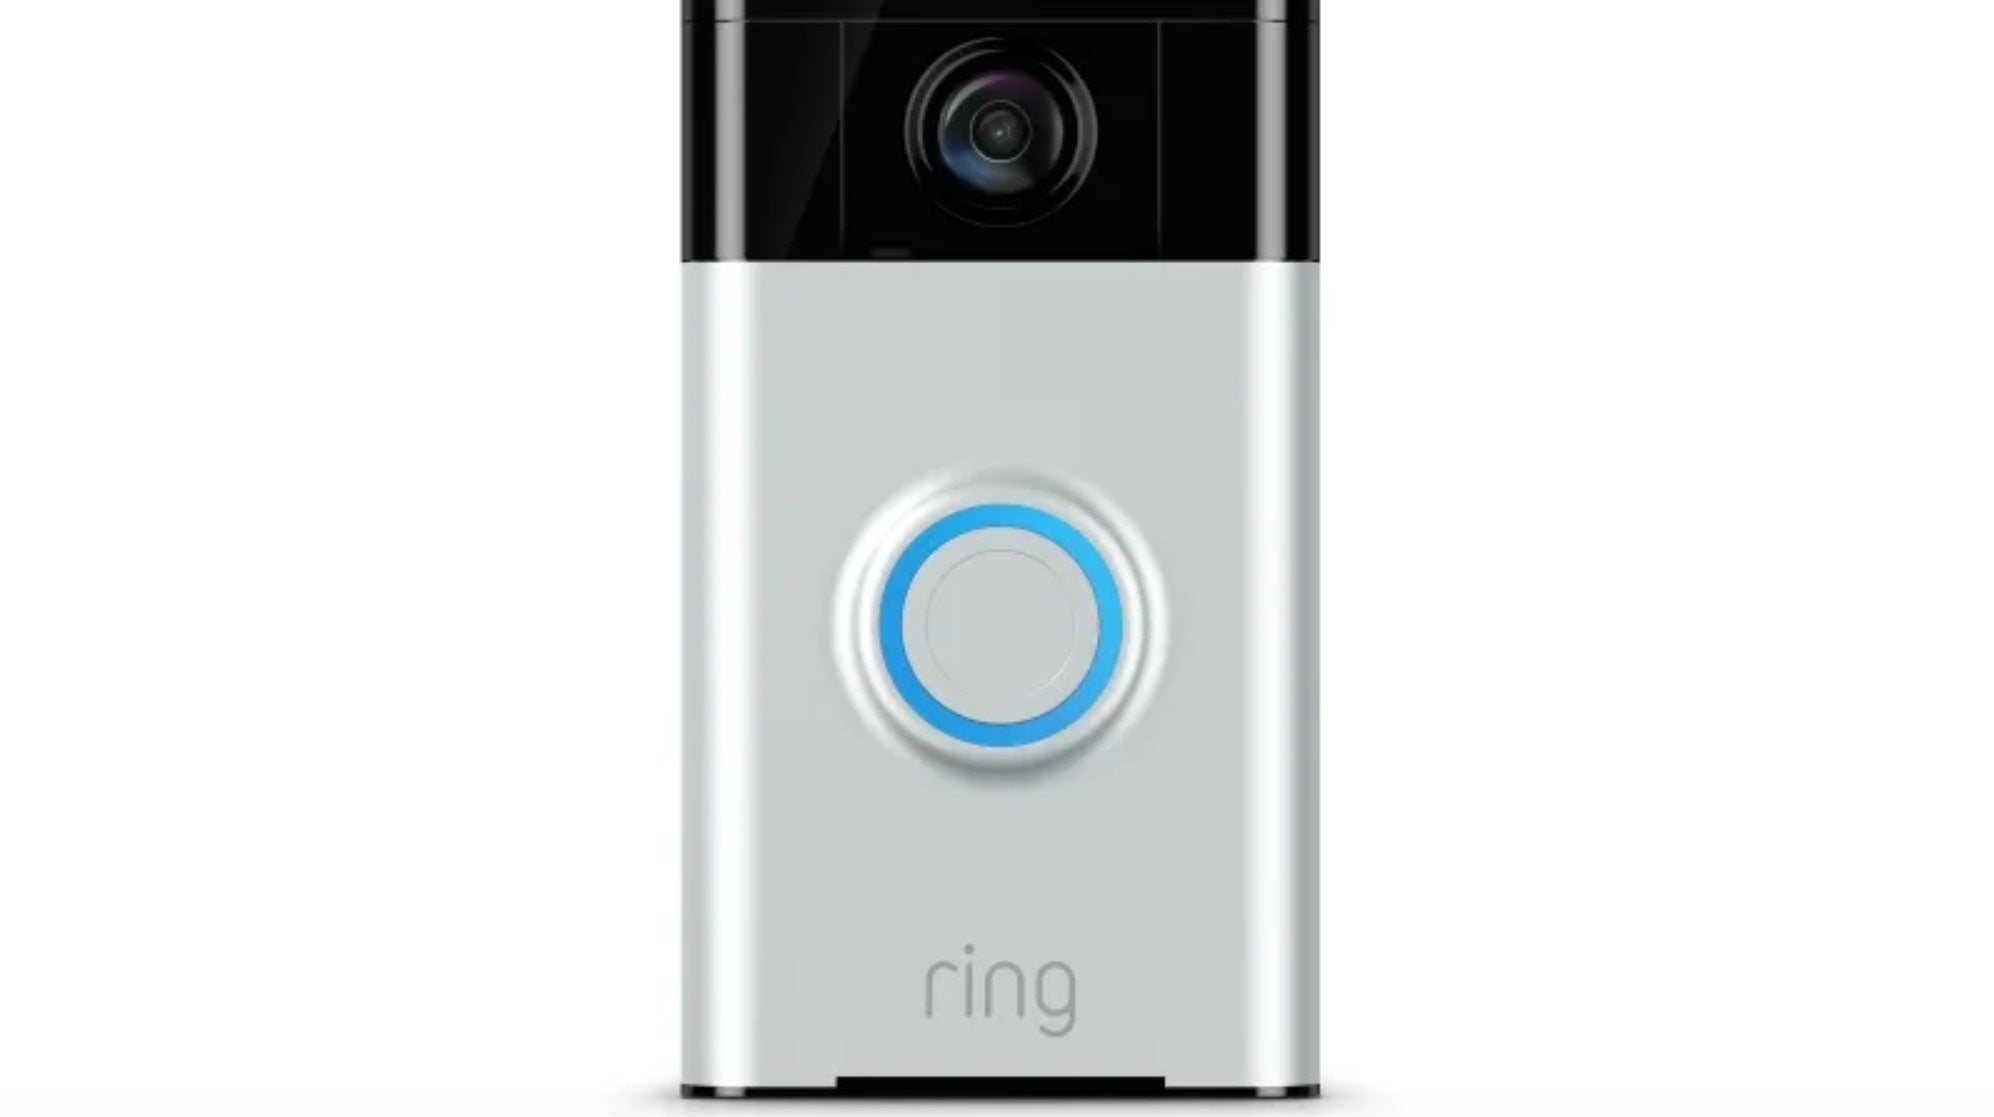 Amazon's Ring Security Cameras May Have Let Employees Spy On Customers: Report